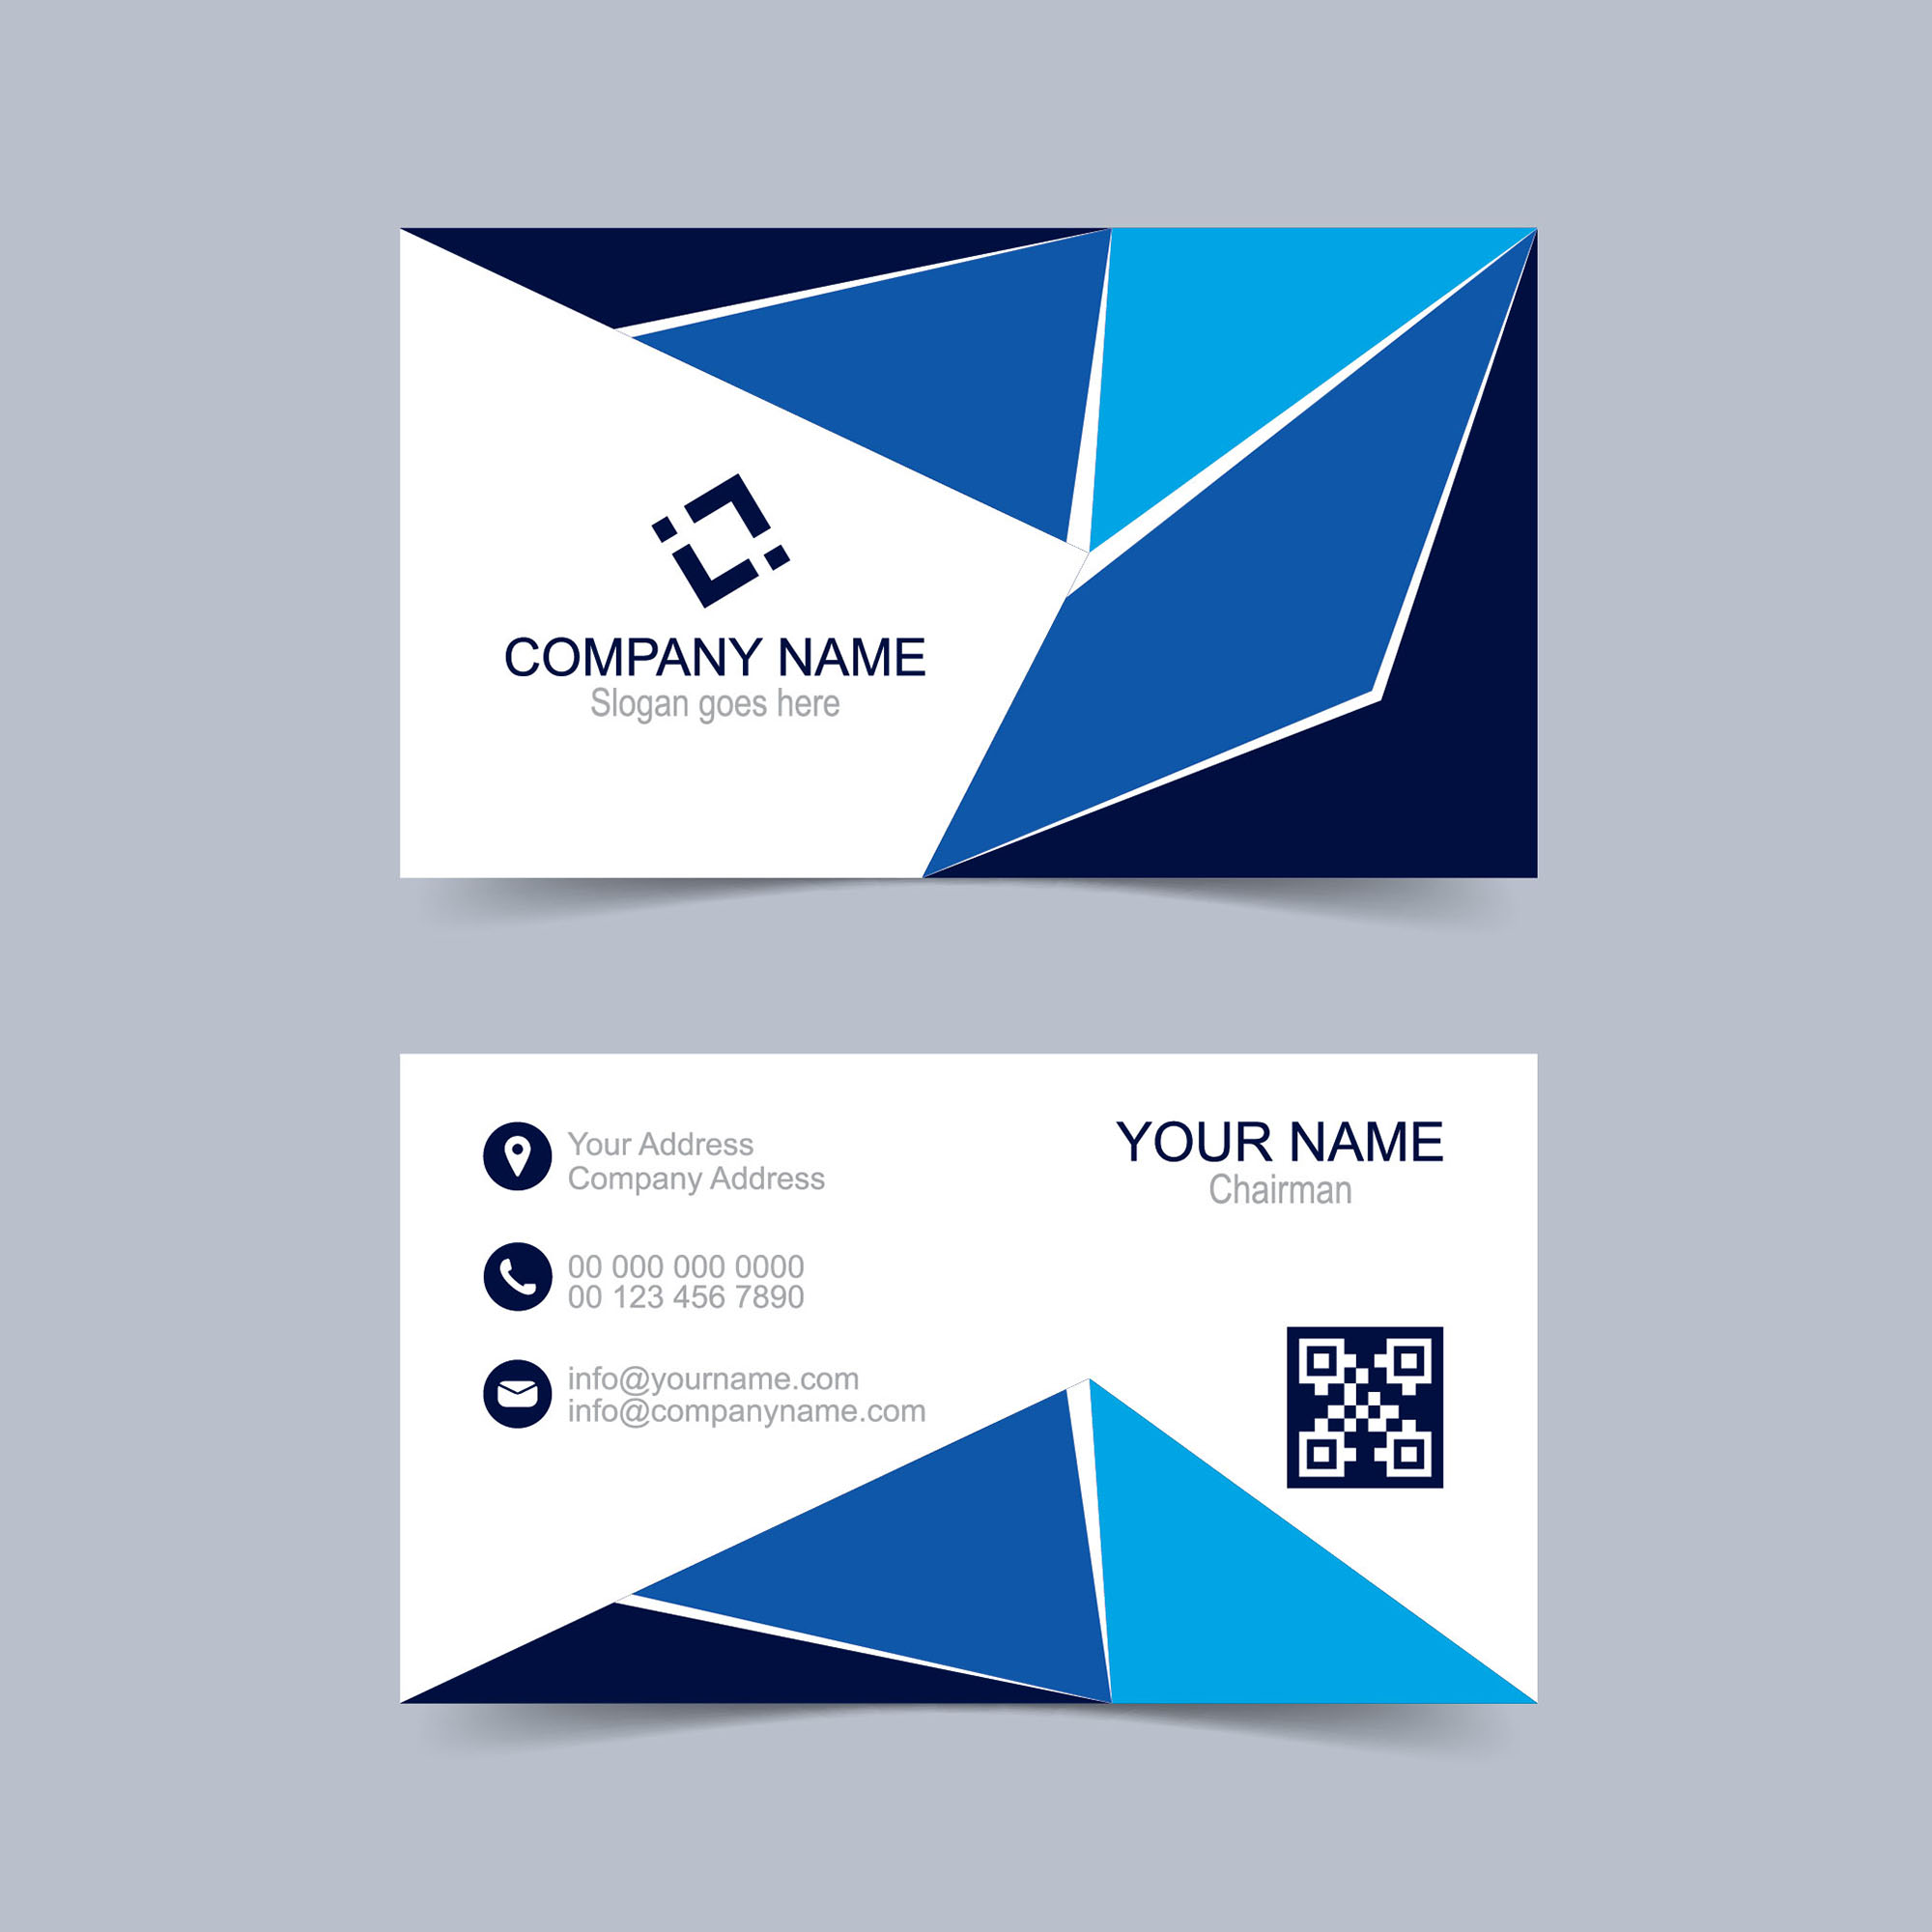 Creative Business Card Design Free Download Wisxicom - Business card templates designs